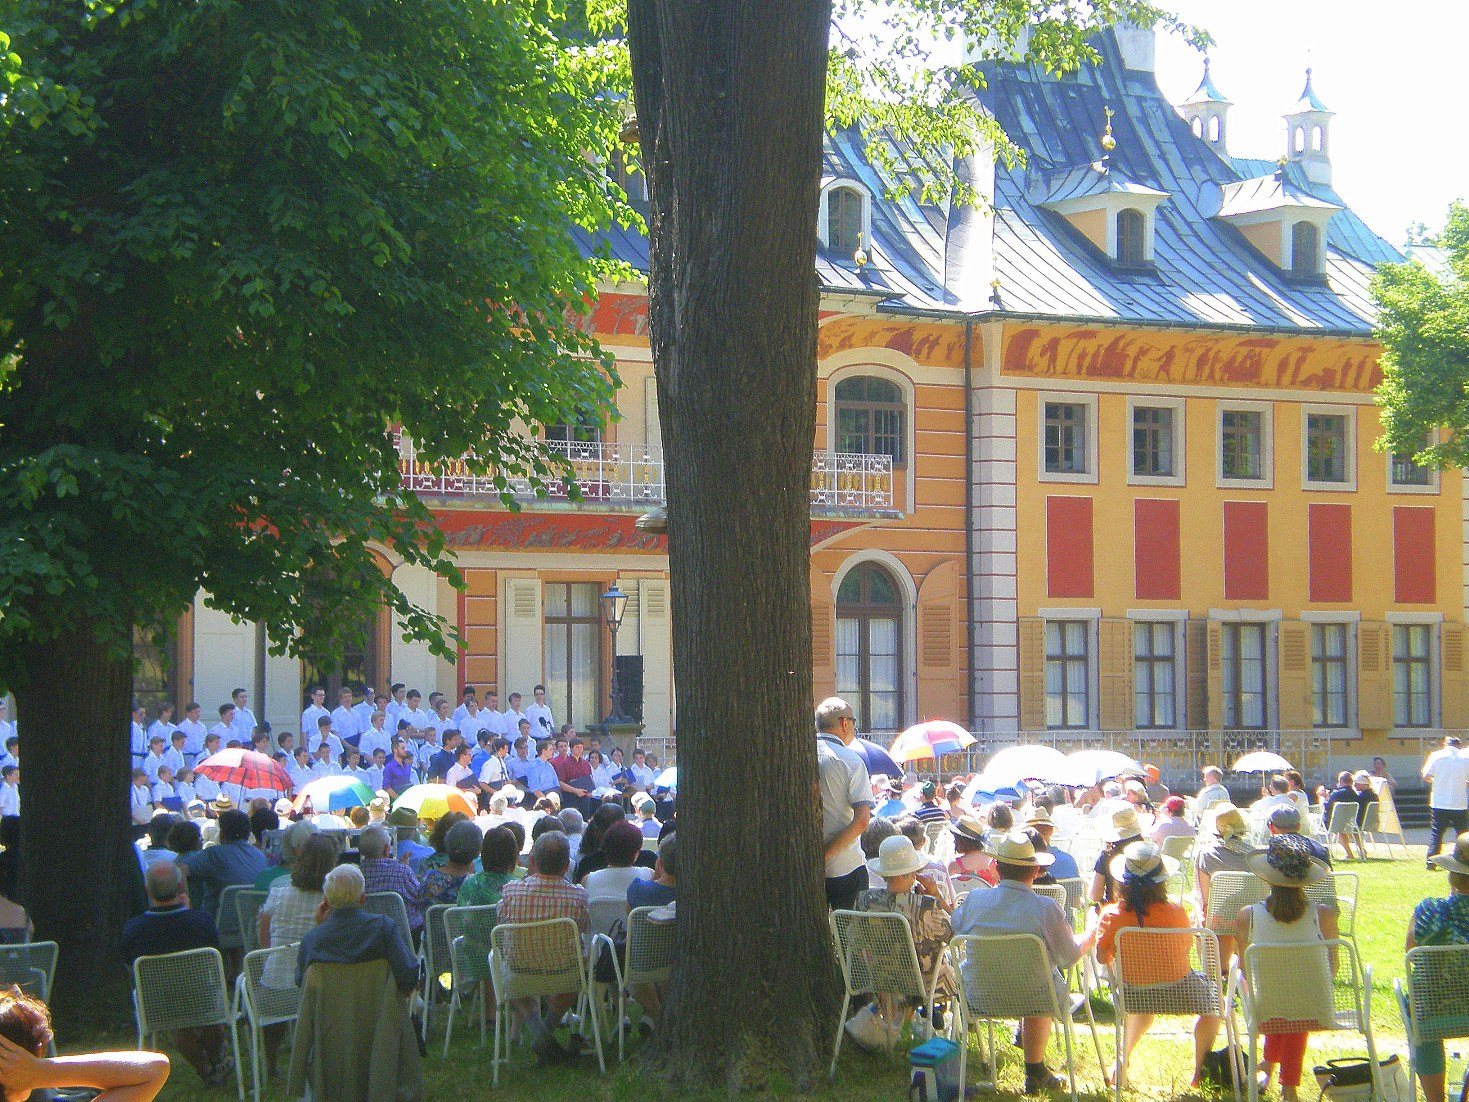 Kreuzchor concert at Pillnitz